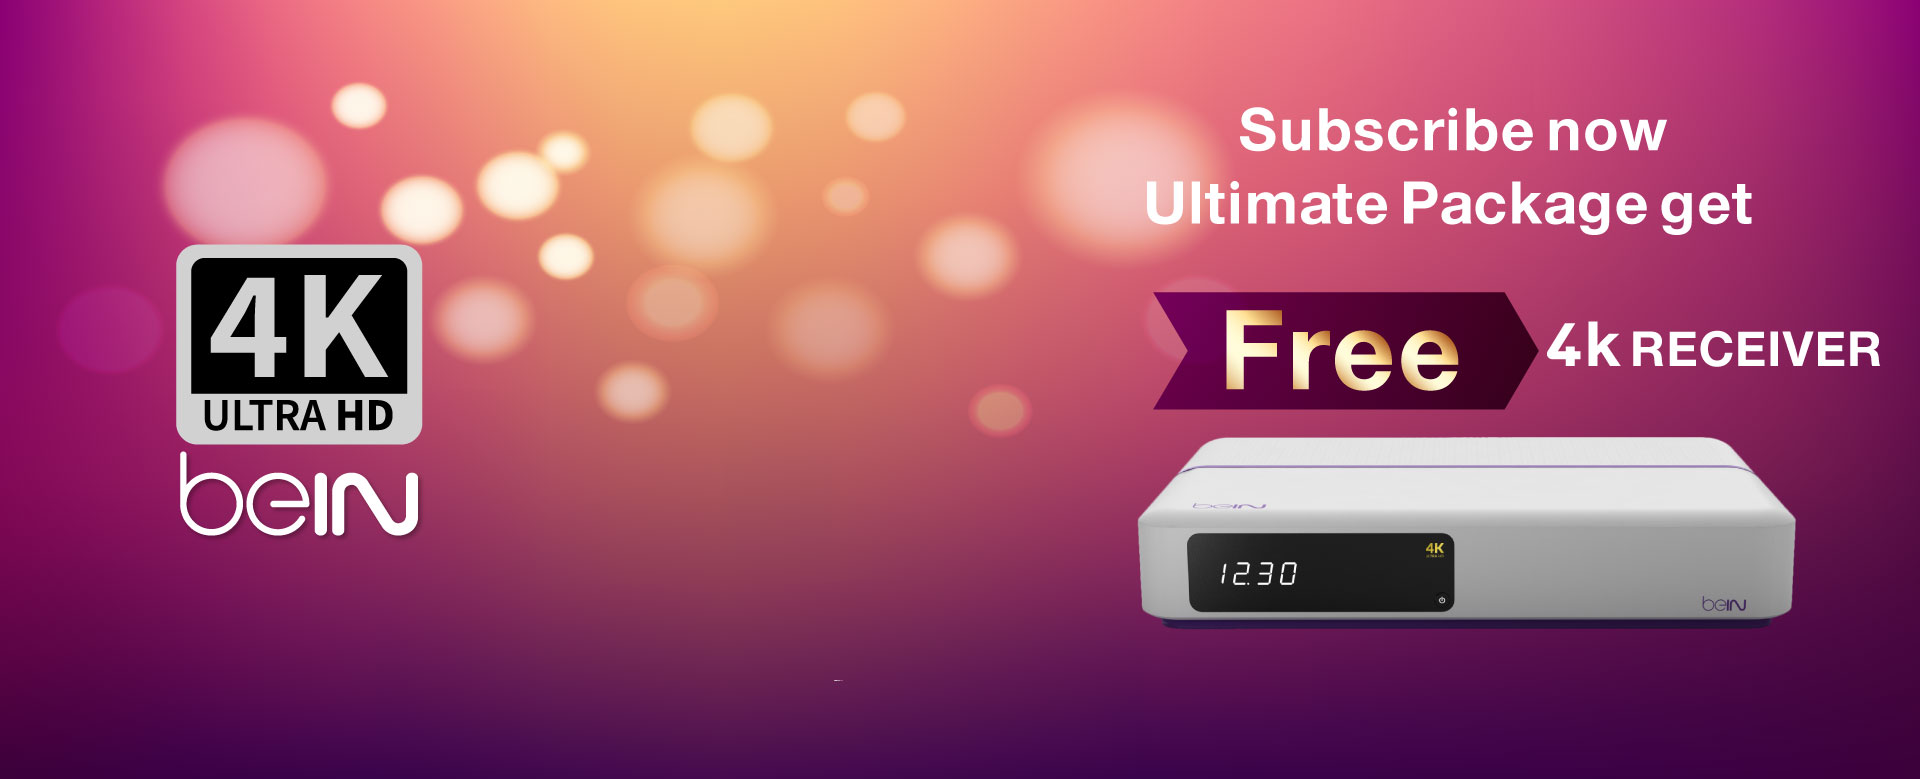 beIN Offer 2021 Ultemate Package, beIN Offer, bein sports offer, beIN Ultimate Package, bein Promotions, bein sports Promotions